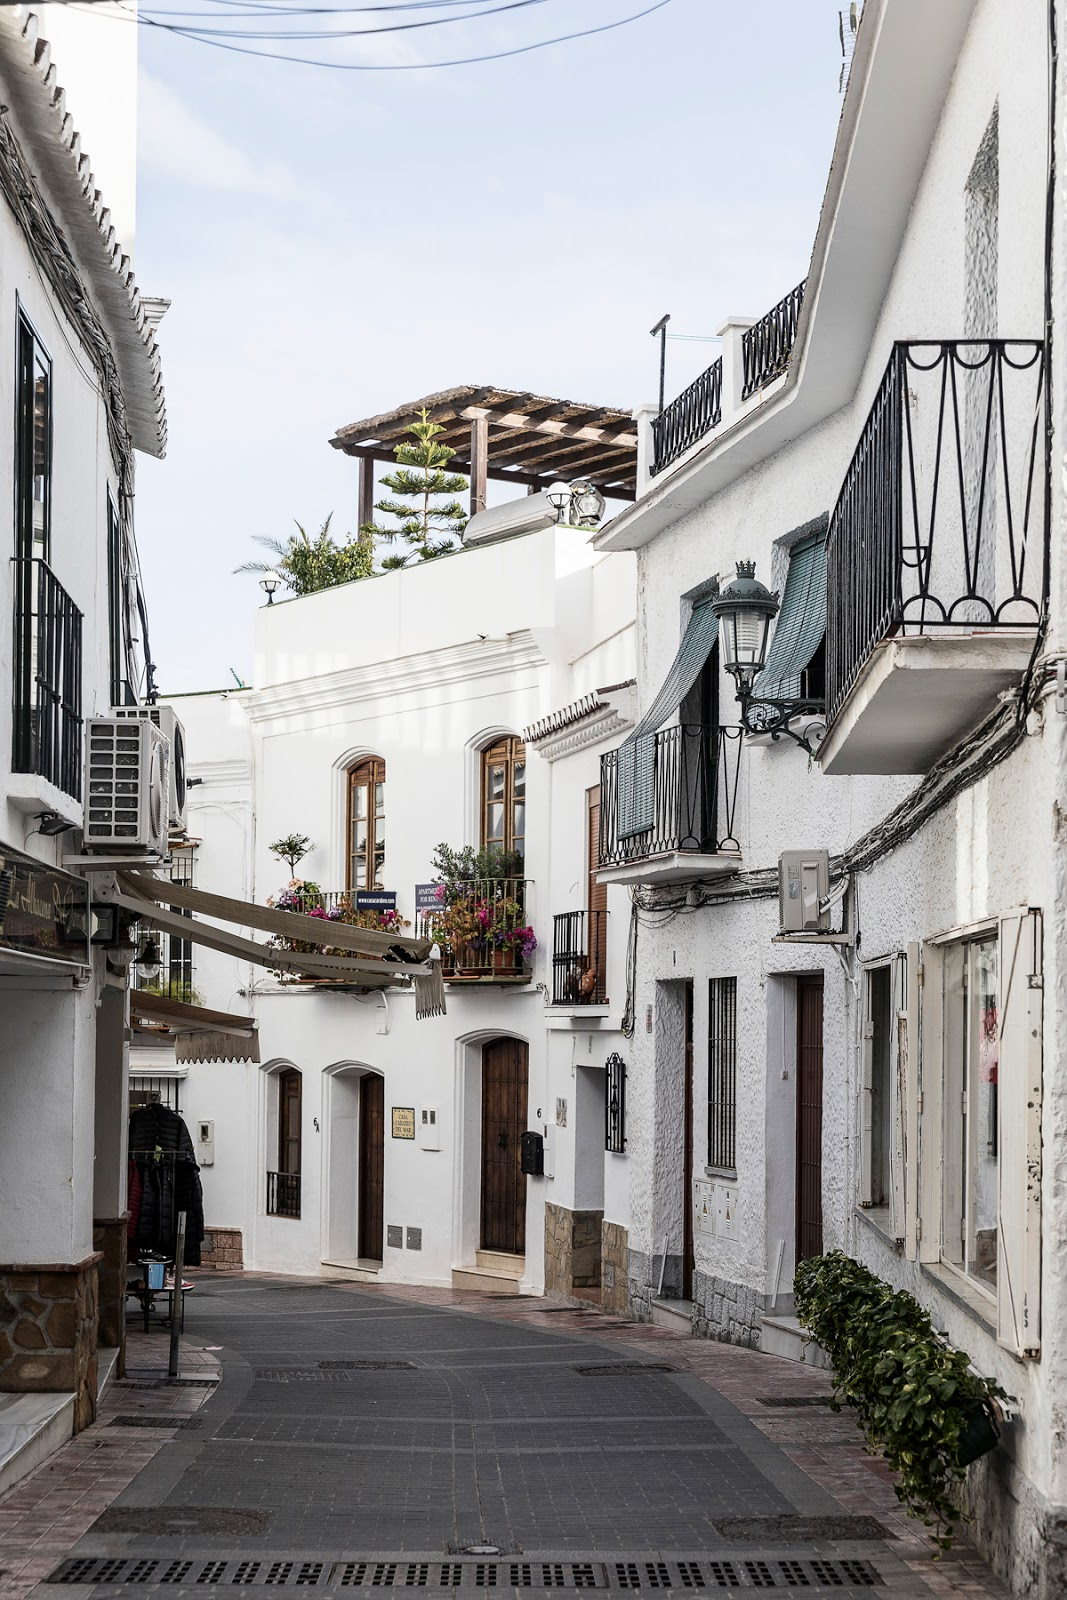 Nerja, Costa del Sol, Malaga, Andalucia, Spain, Espanja, travelblog, travelling, matkustus, matkustaminen, lomakohde, rantaloma, Puebloespana, White village, old village, Pueblo blanco, valokuvaaja, photographer, Frida Steiner, Visualaddict, Visualaddictfrida, photography, nature, sea, holiday, vacation, ocean, Mediterranean,